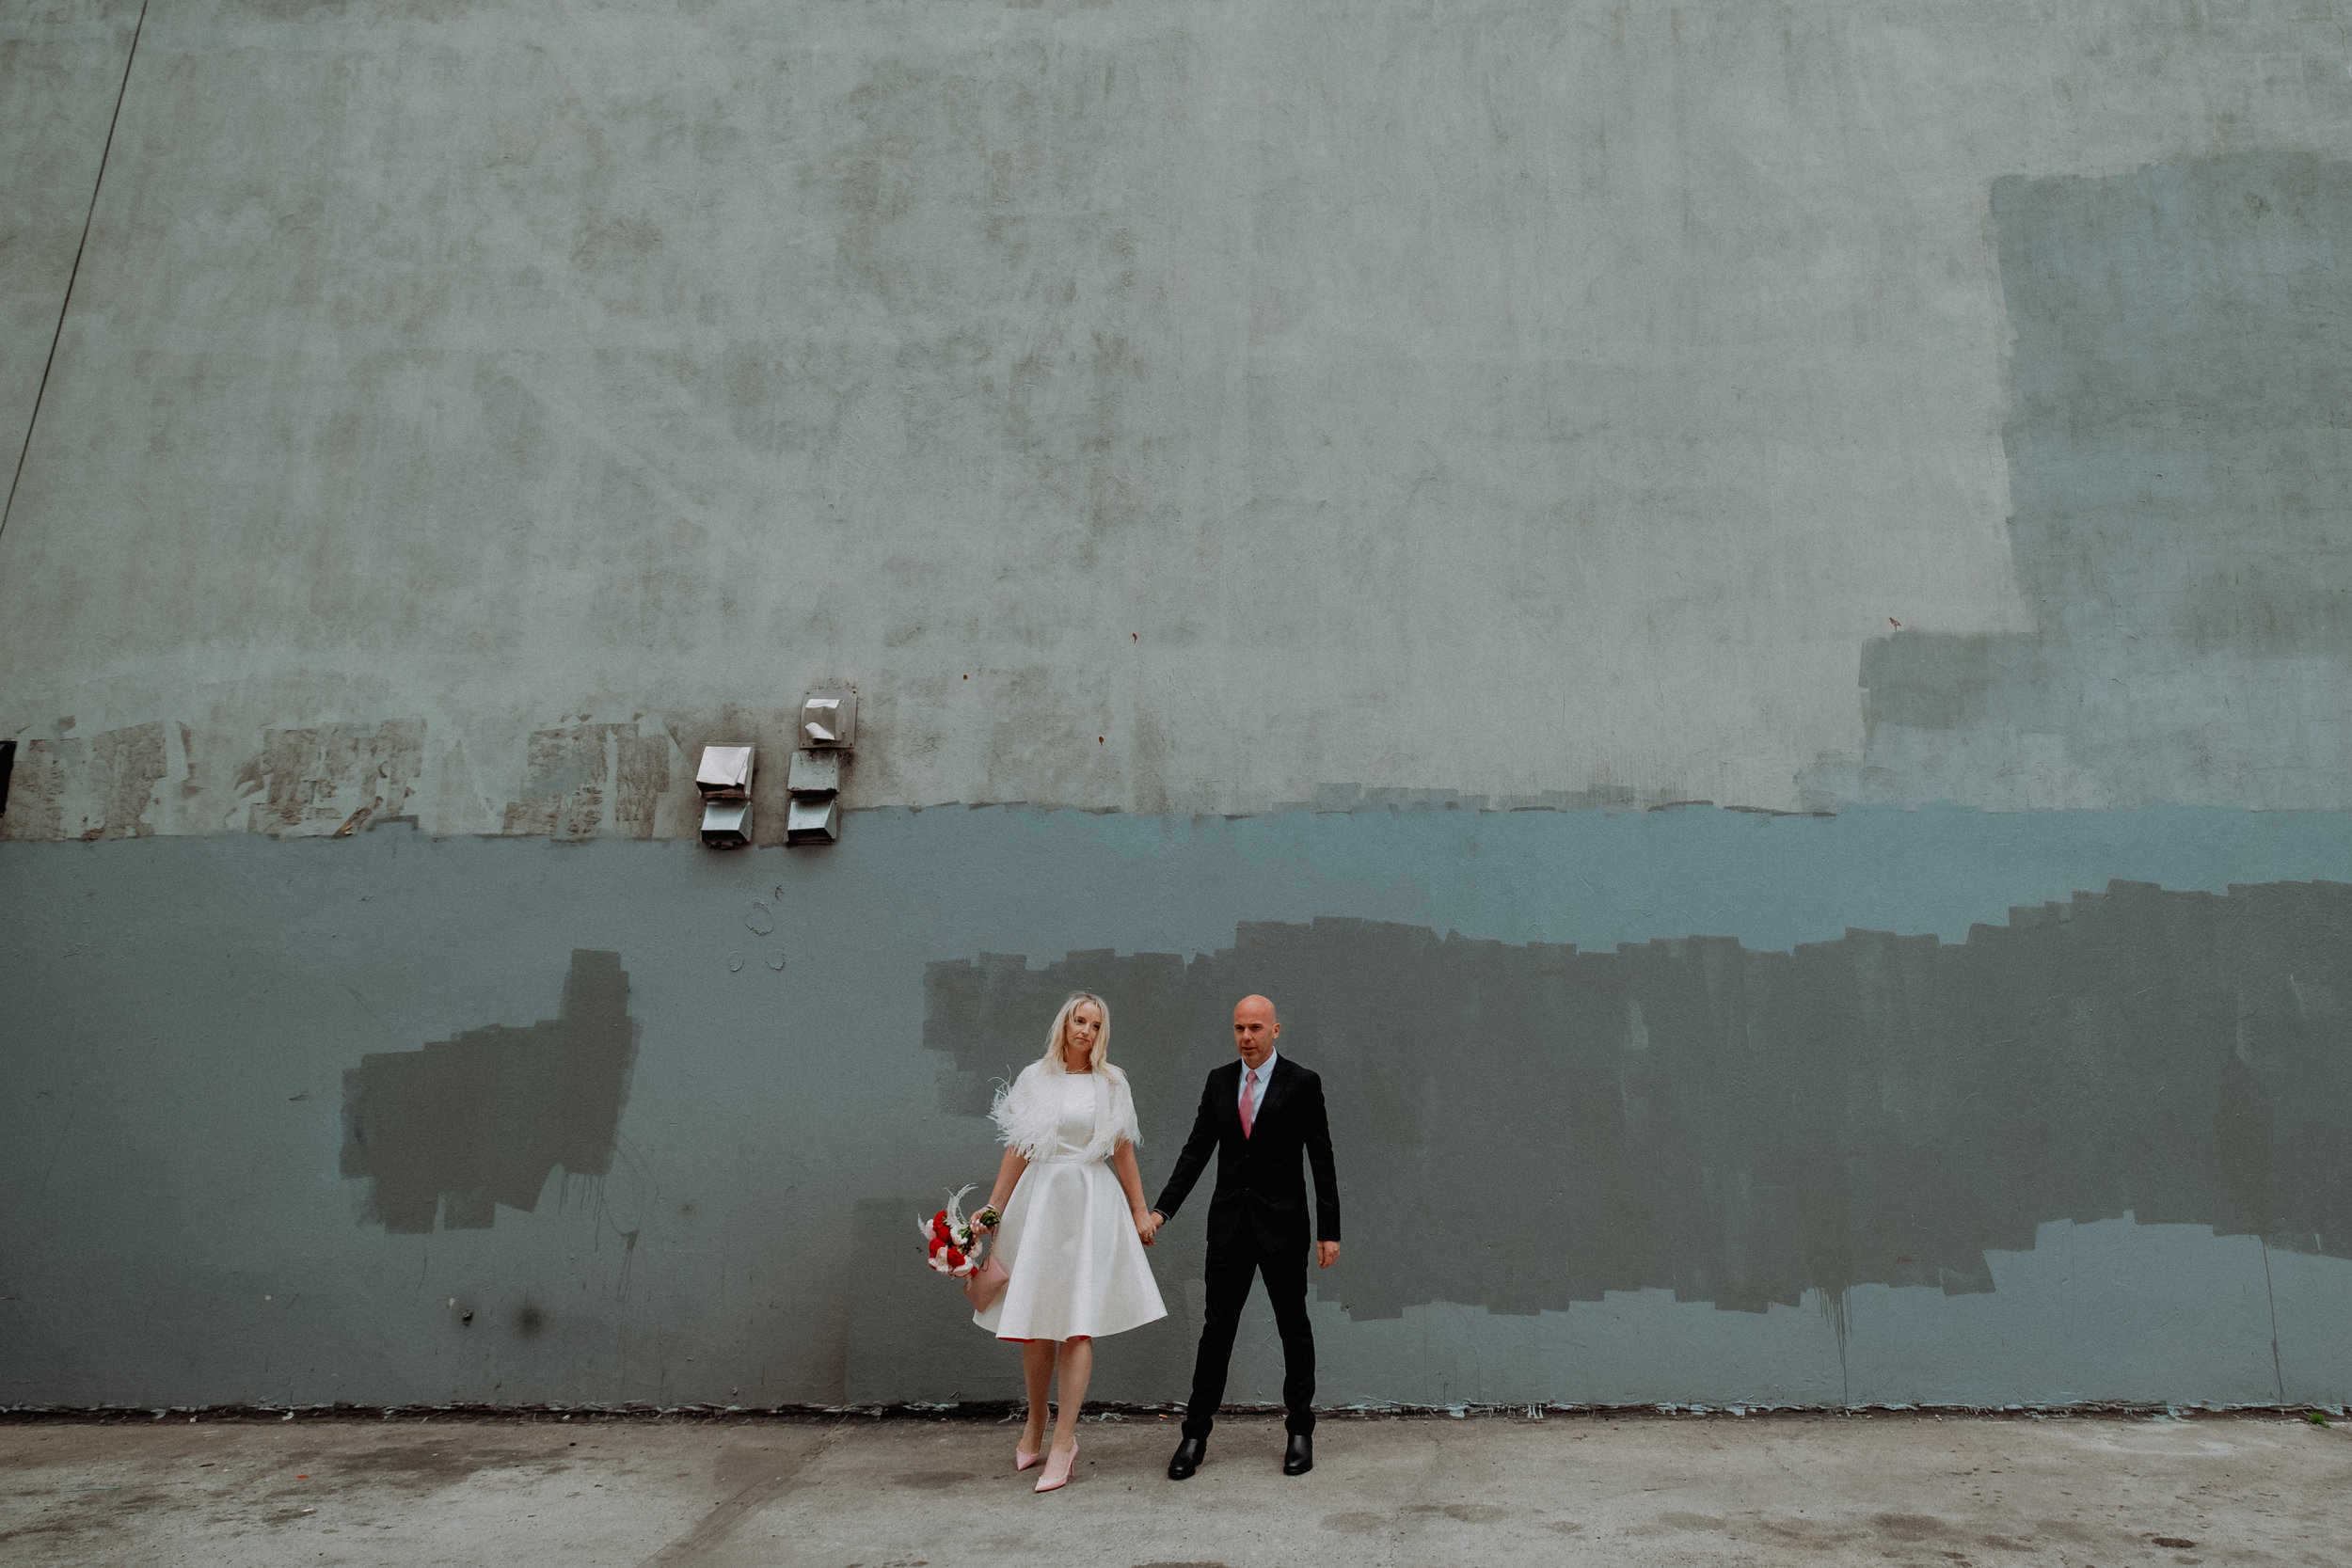 Brooklyn_City_Hall_Elopement_Photographer_Chellise_Michael_Photography229.JPG